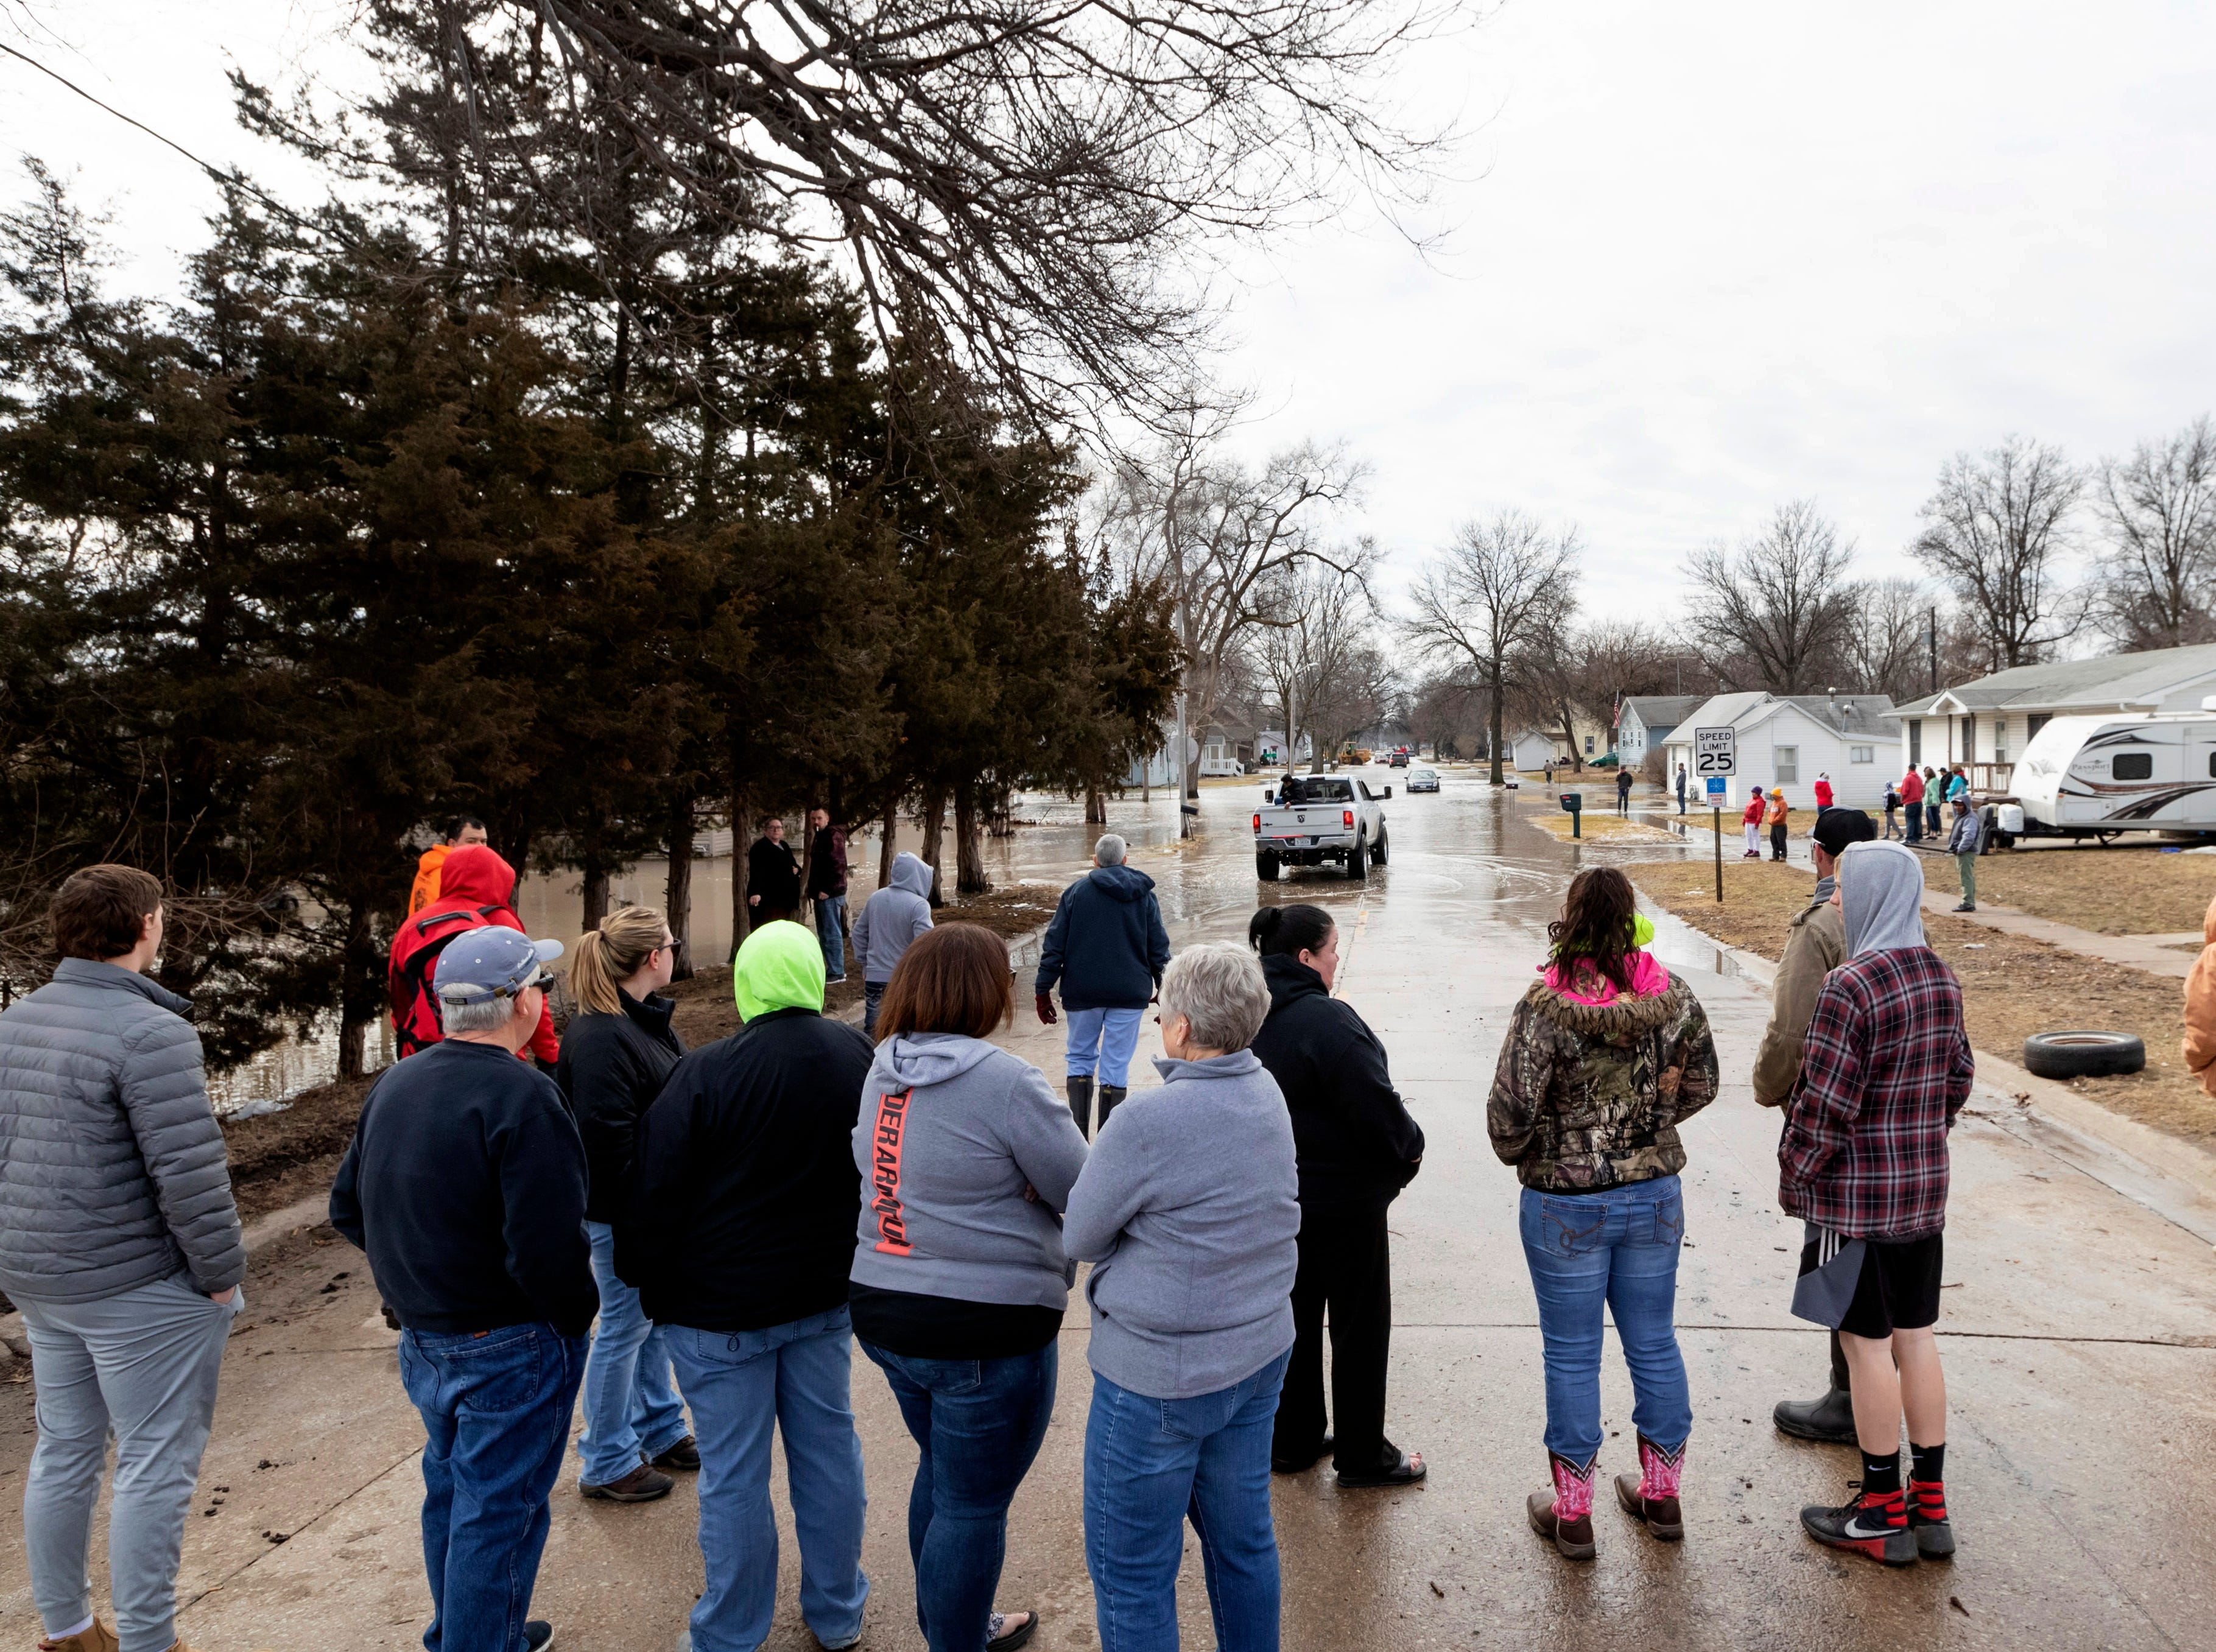 A crowd gathers to watch residents make their way in and out of a flooded neighborhood Sunday, March 17, 2019, in Omaha, Neb. Hundreds of people were evacuated from their homes in Nebraska and Iowa as levees succumbed to the rush of water.